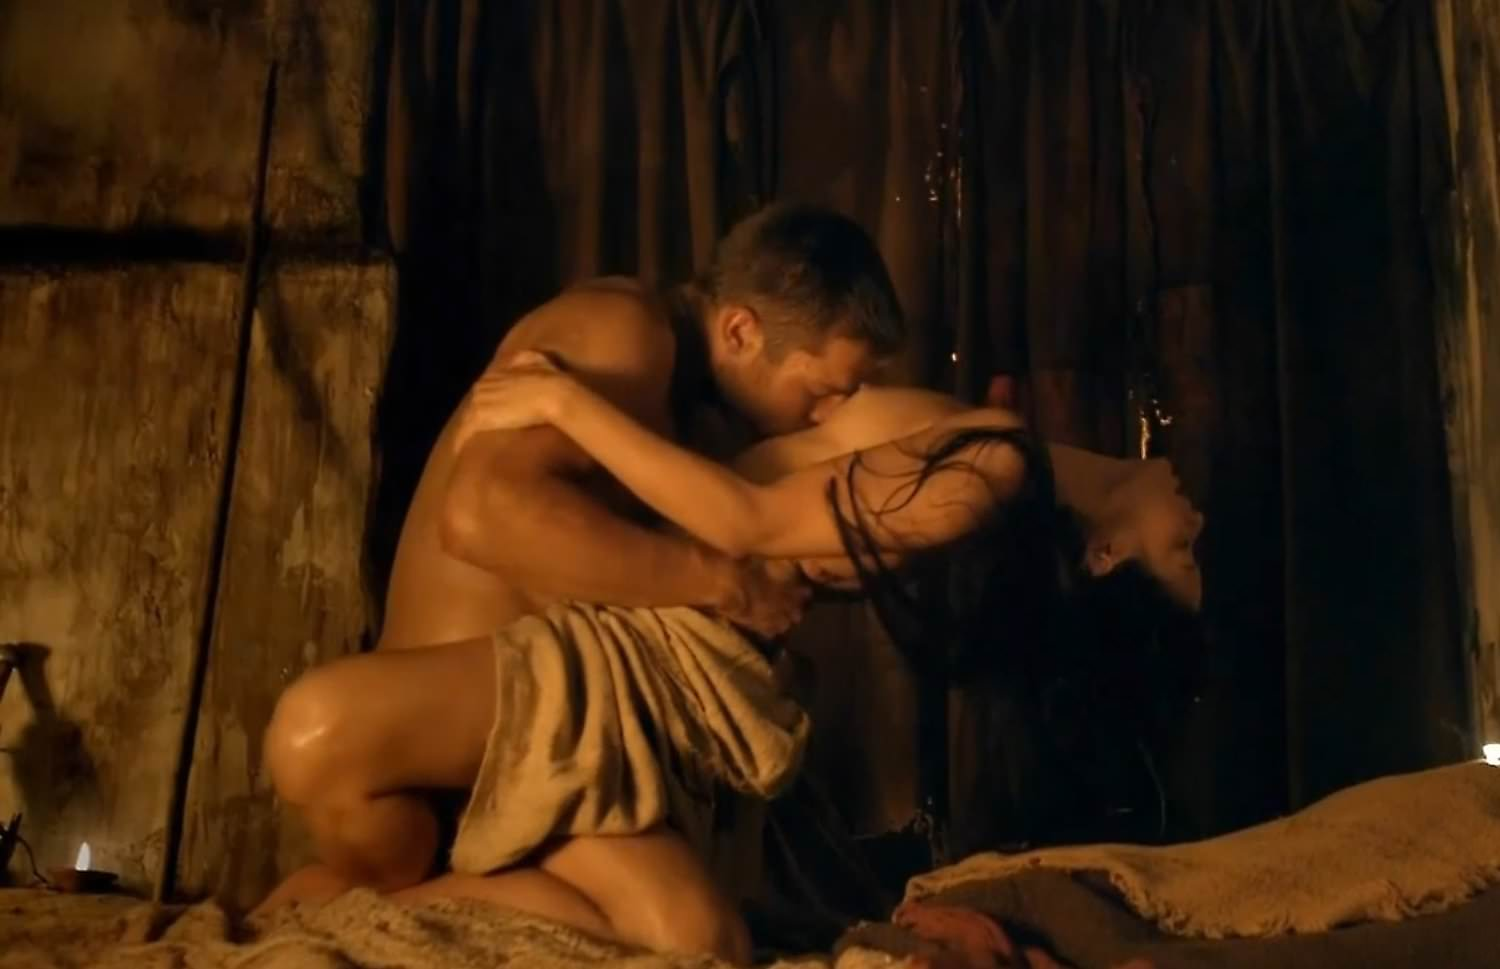 Katrina Law Nude Sex Scene In Spartacus Scandalplanetcom-2374